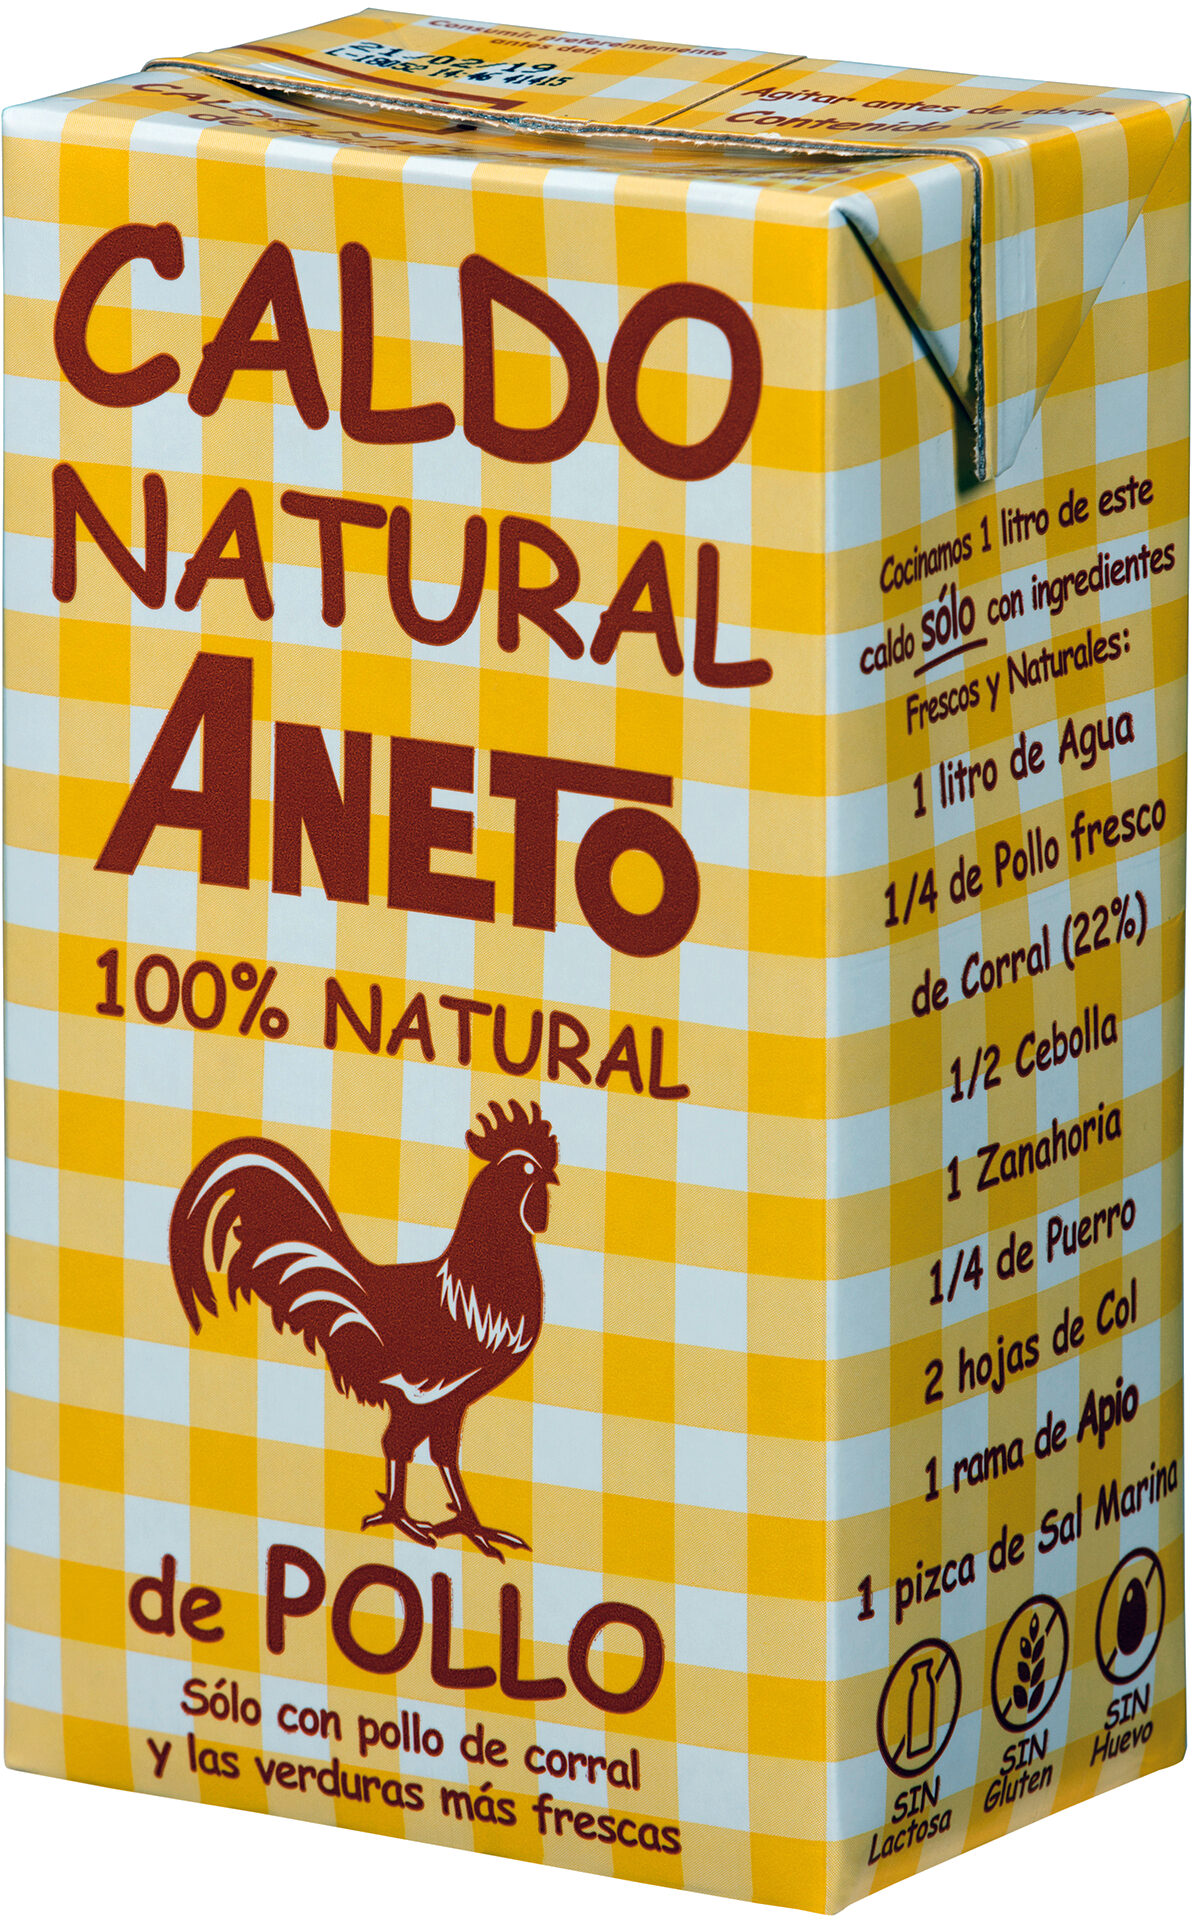 Caldo Natural Aneto de Pollo - Product - es